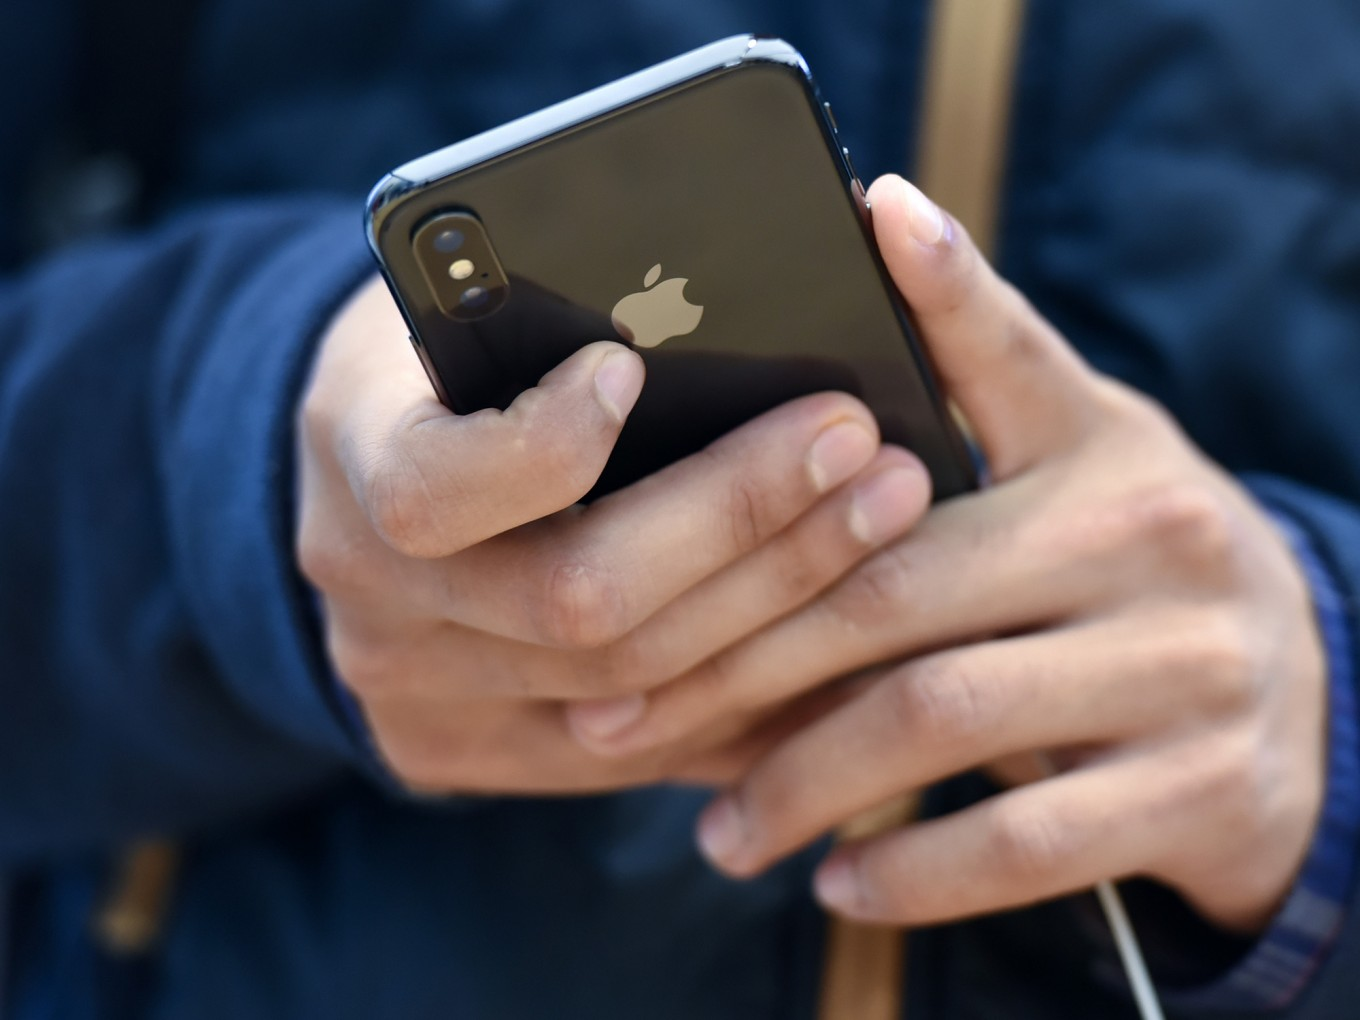 Apple tells lawmakers iPhones are not listening in on consumers